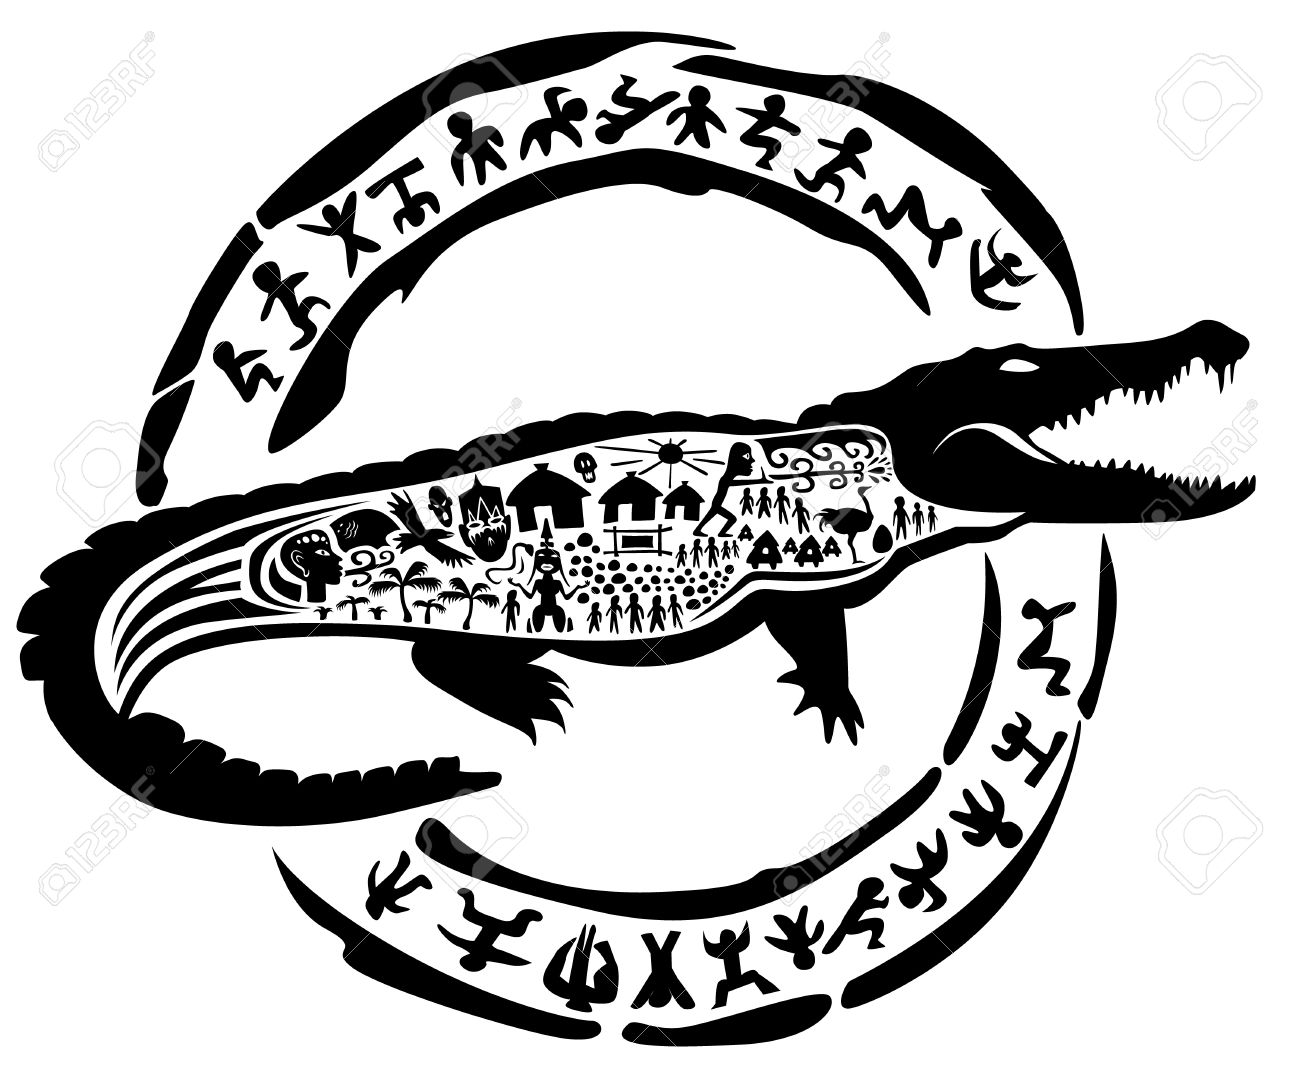 Crocodile Tribale Alligator Le Caïman Illustration Tatouage Timbre